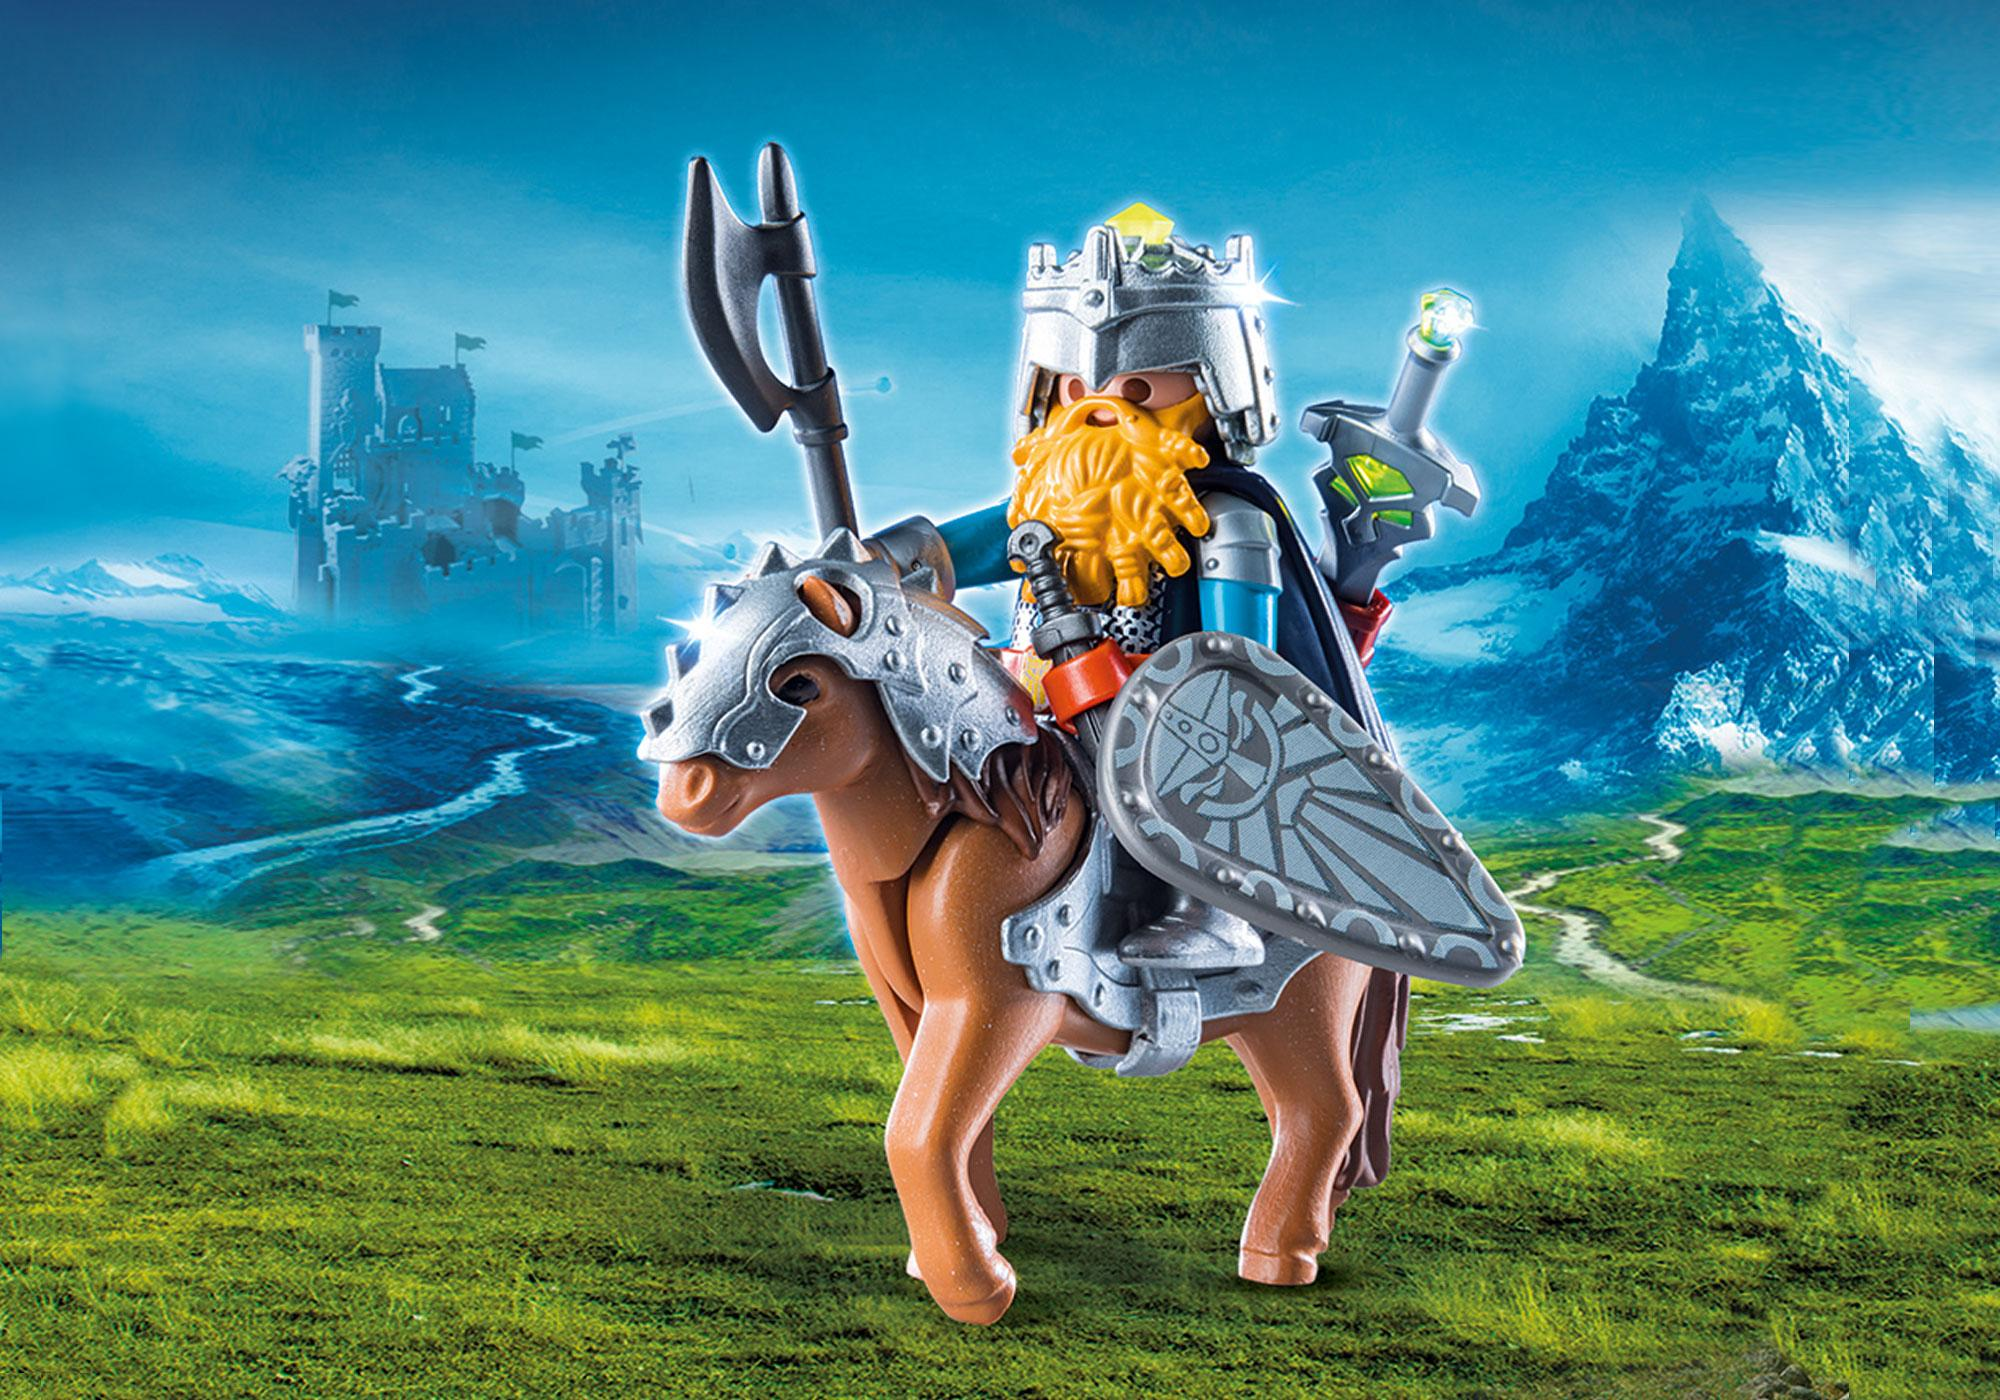 http://media.playmobil.com/i/playmobil/9345_product_detail/Combattant nain et poney